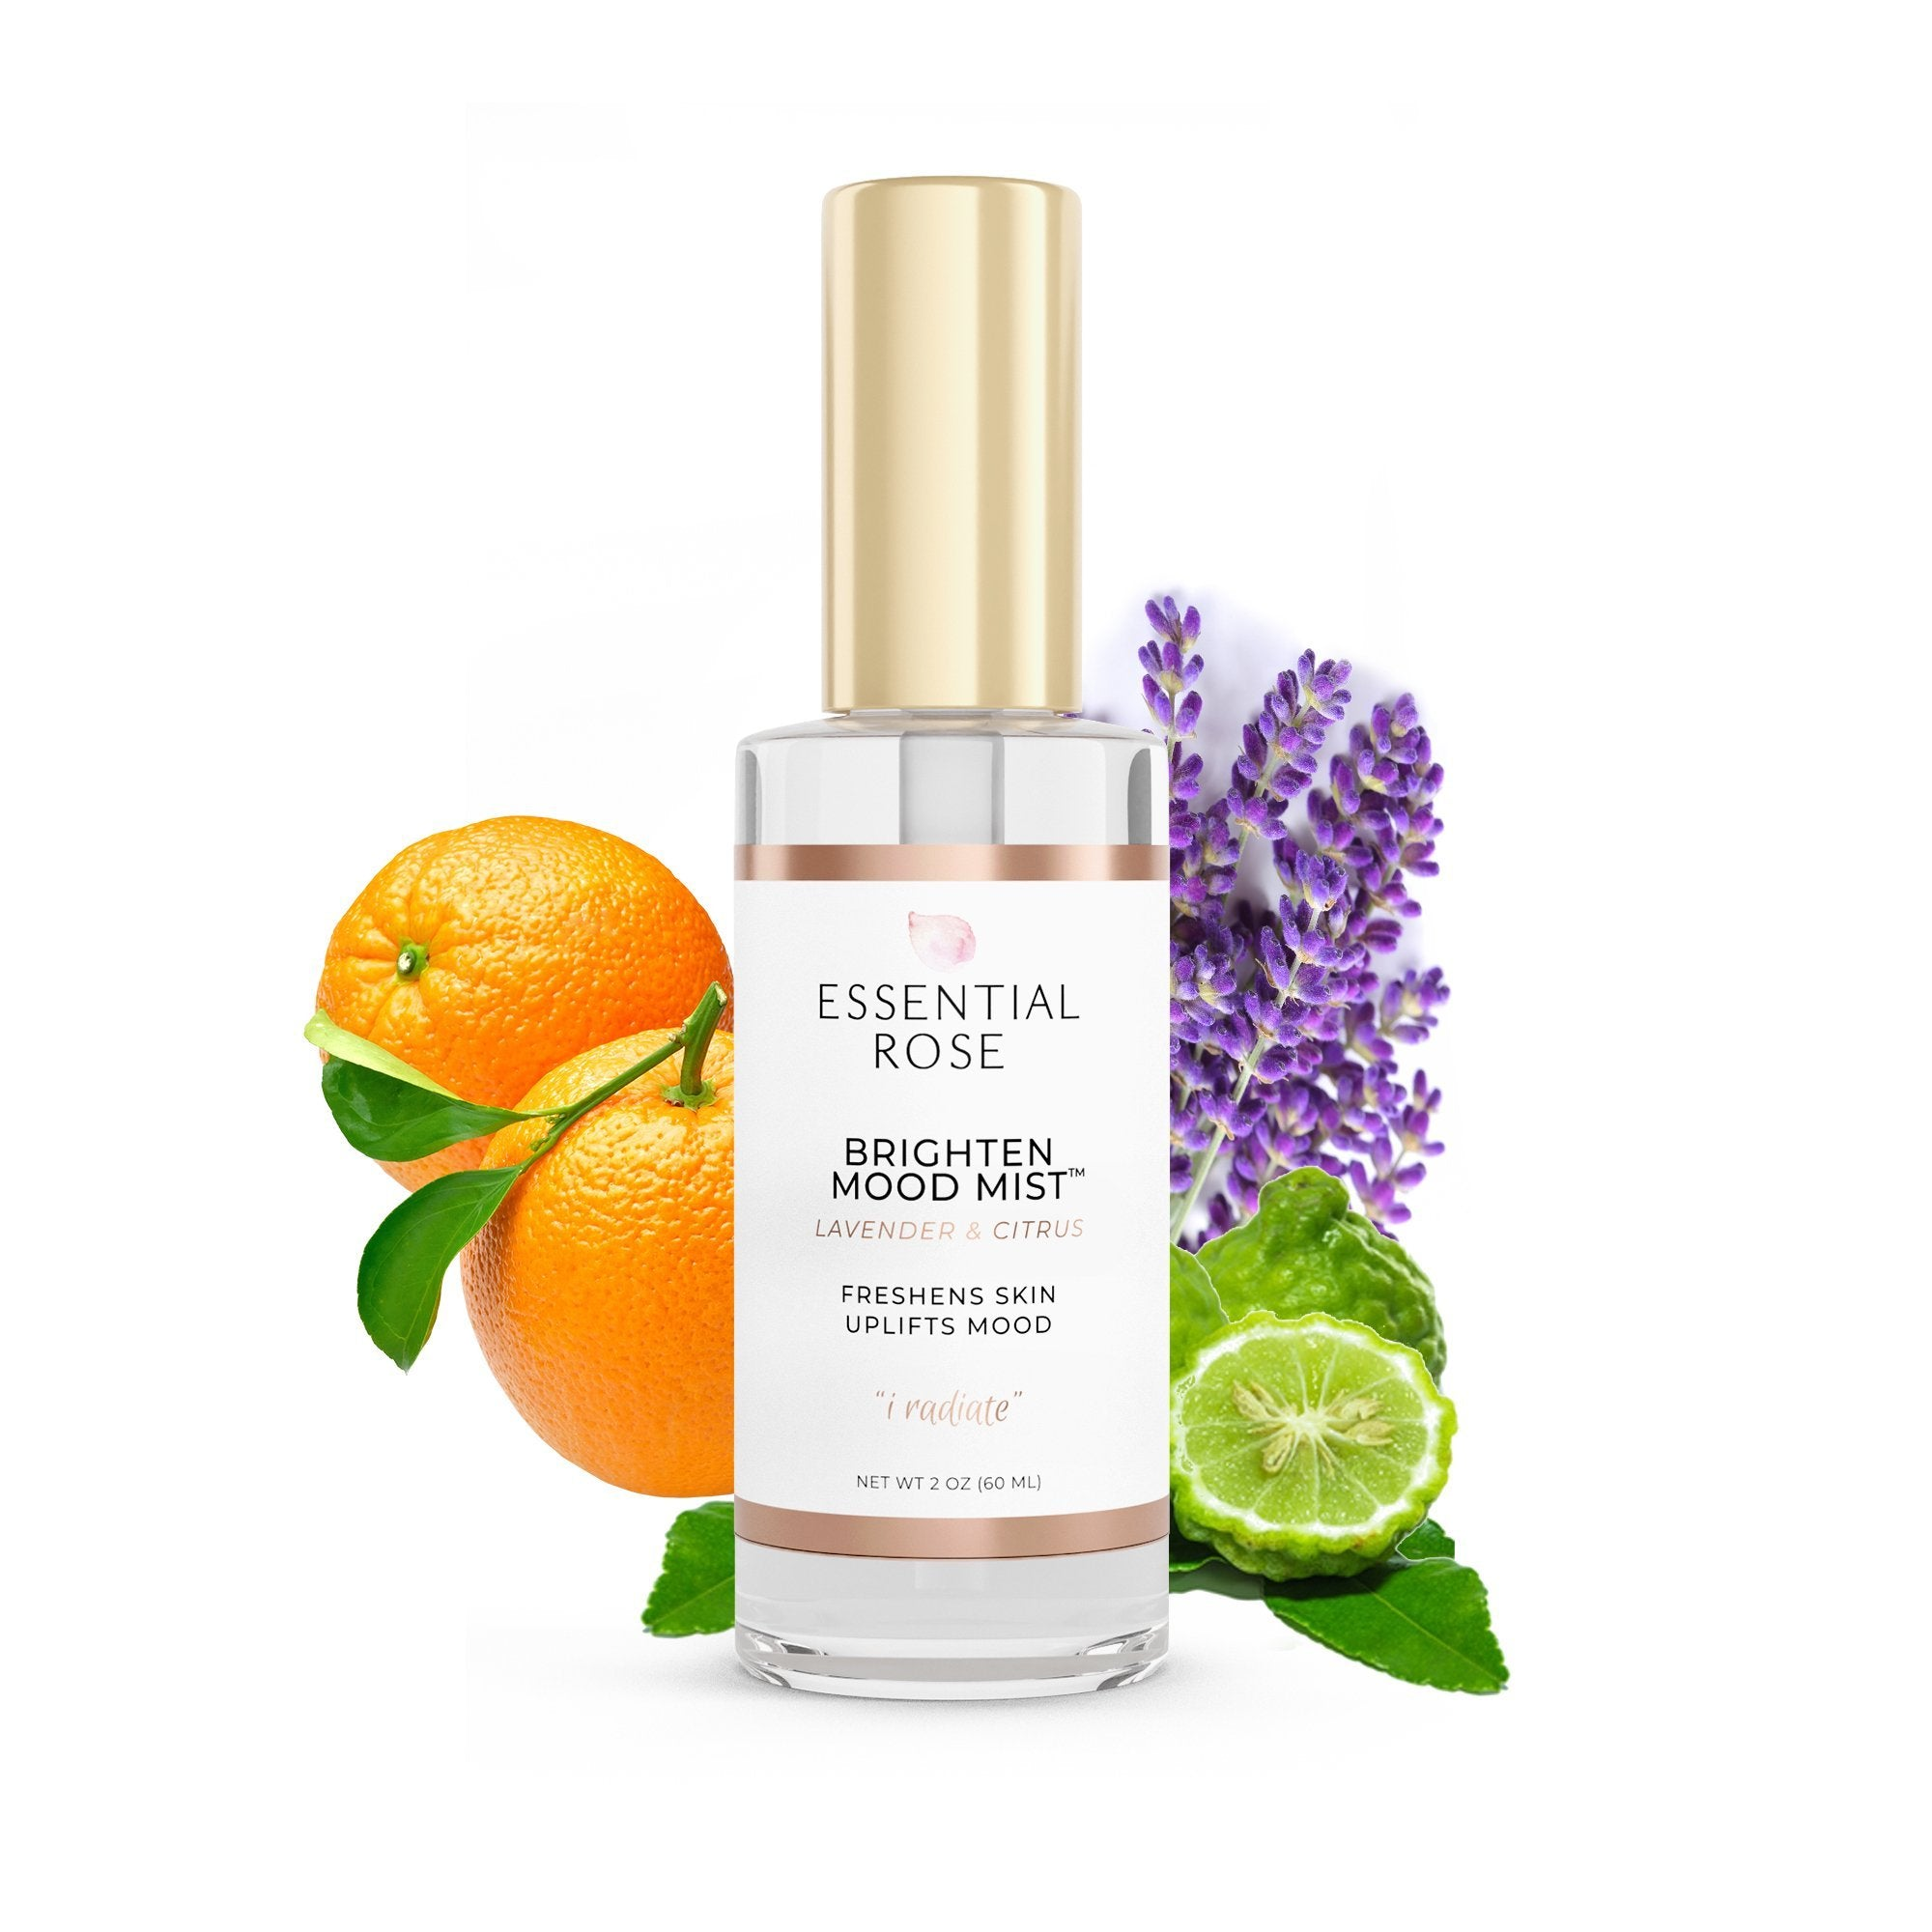 Hydrating Face Mist - Brighten Mood